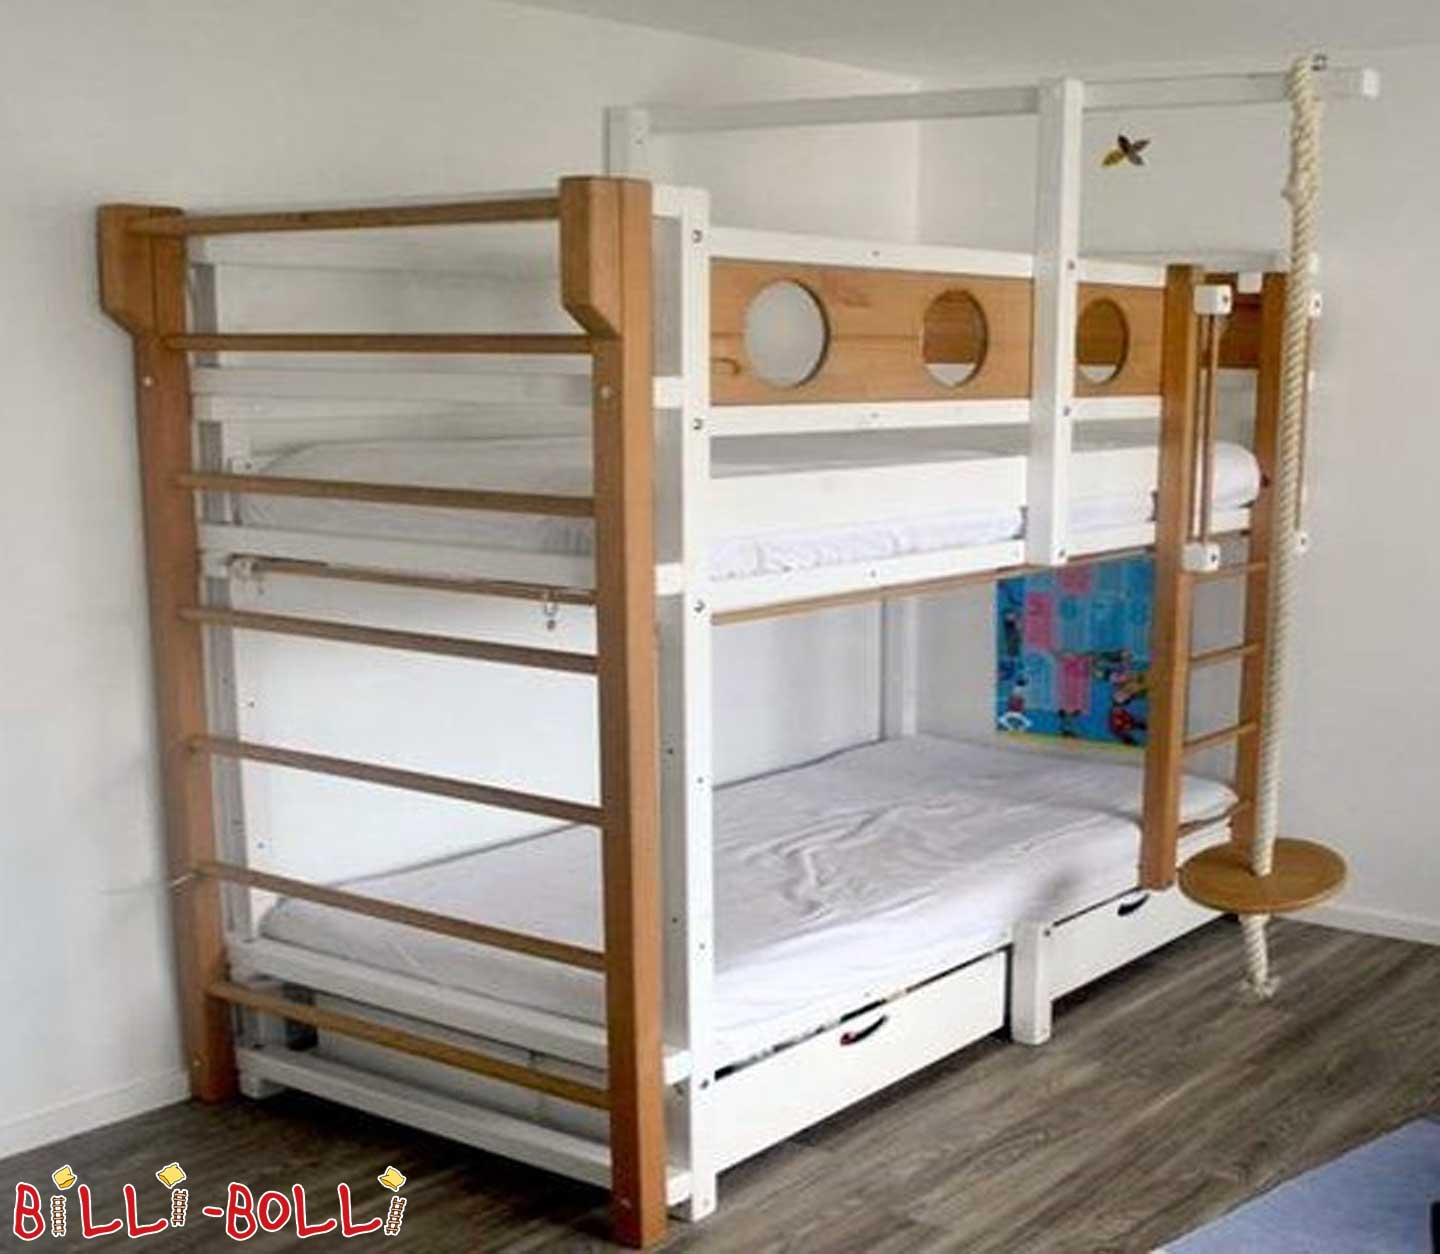 Bunk bed, spruce, 90 x 200 cm, painted white (second hand bunk bed)